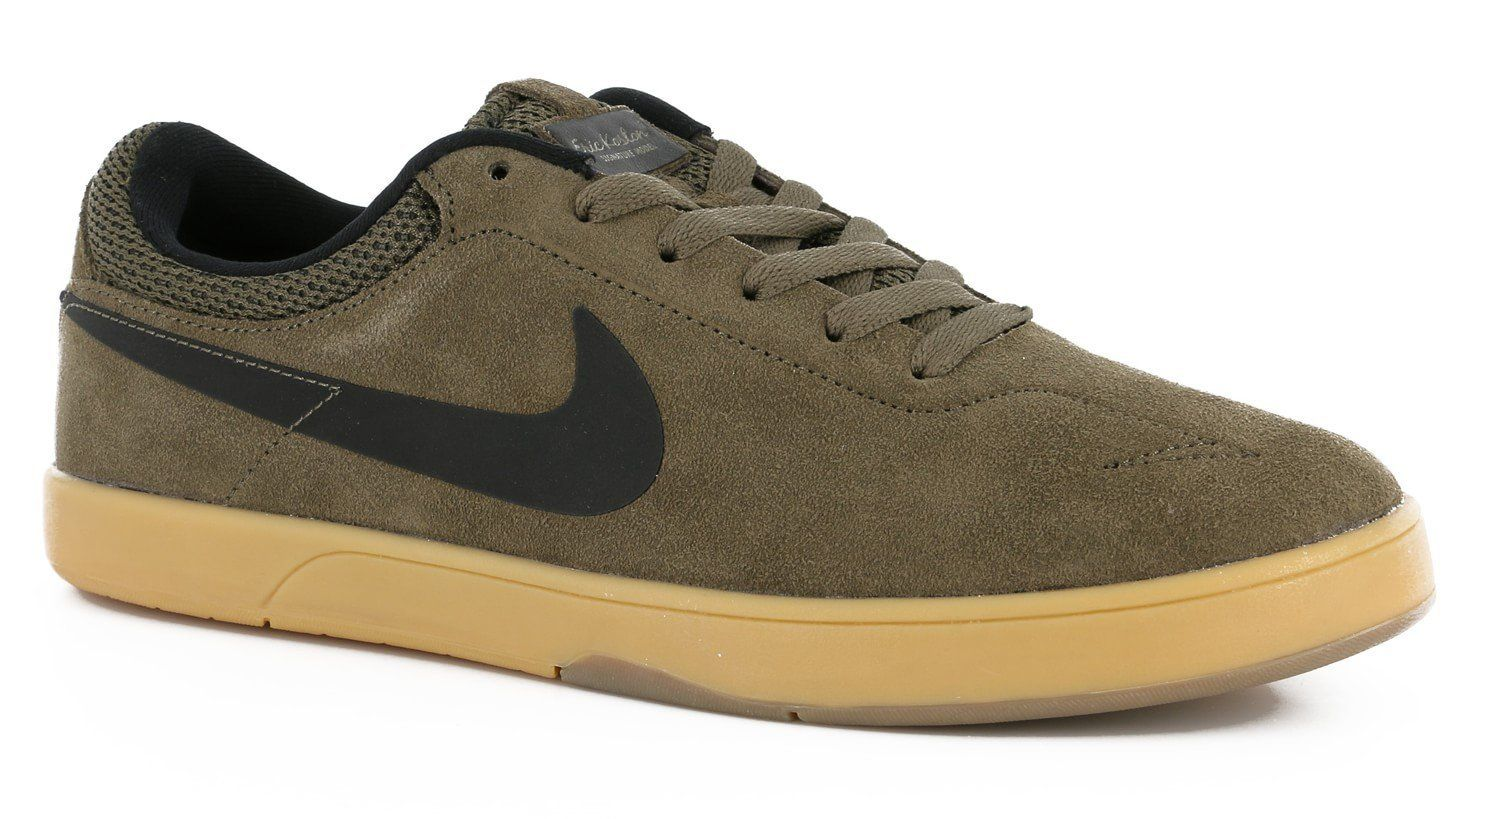 Nike Zoom Eric Koston Men s Skateboarding Shoe - Fieldstone Iron Black-Gum  Light Brown (10.5)  1ca63609dd